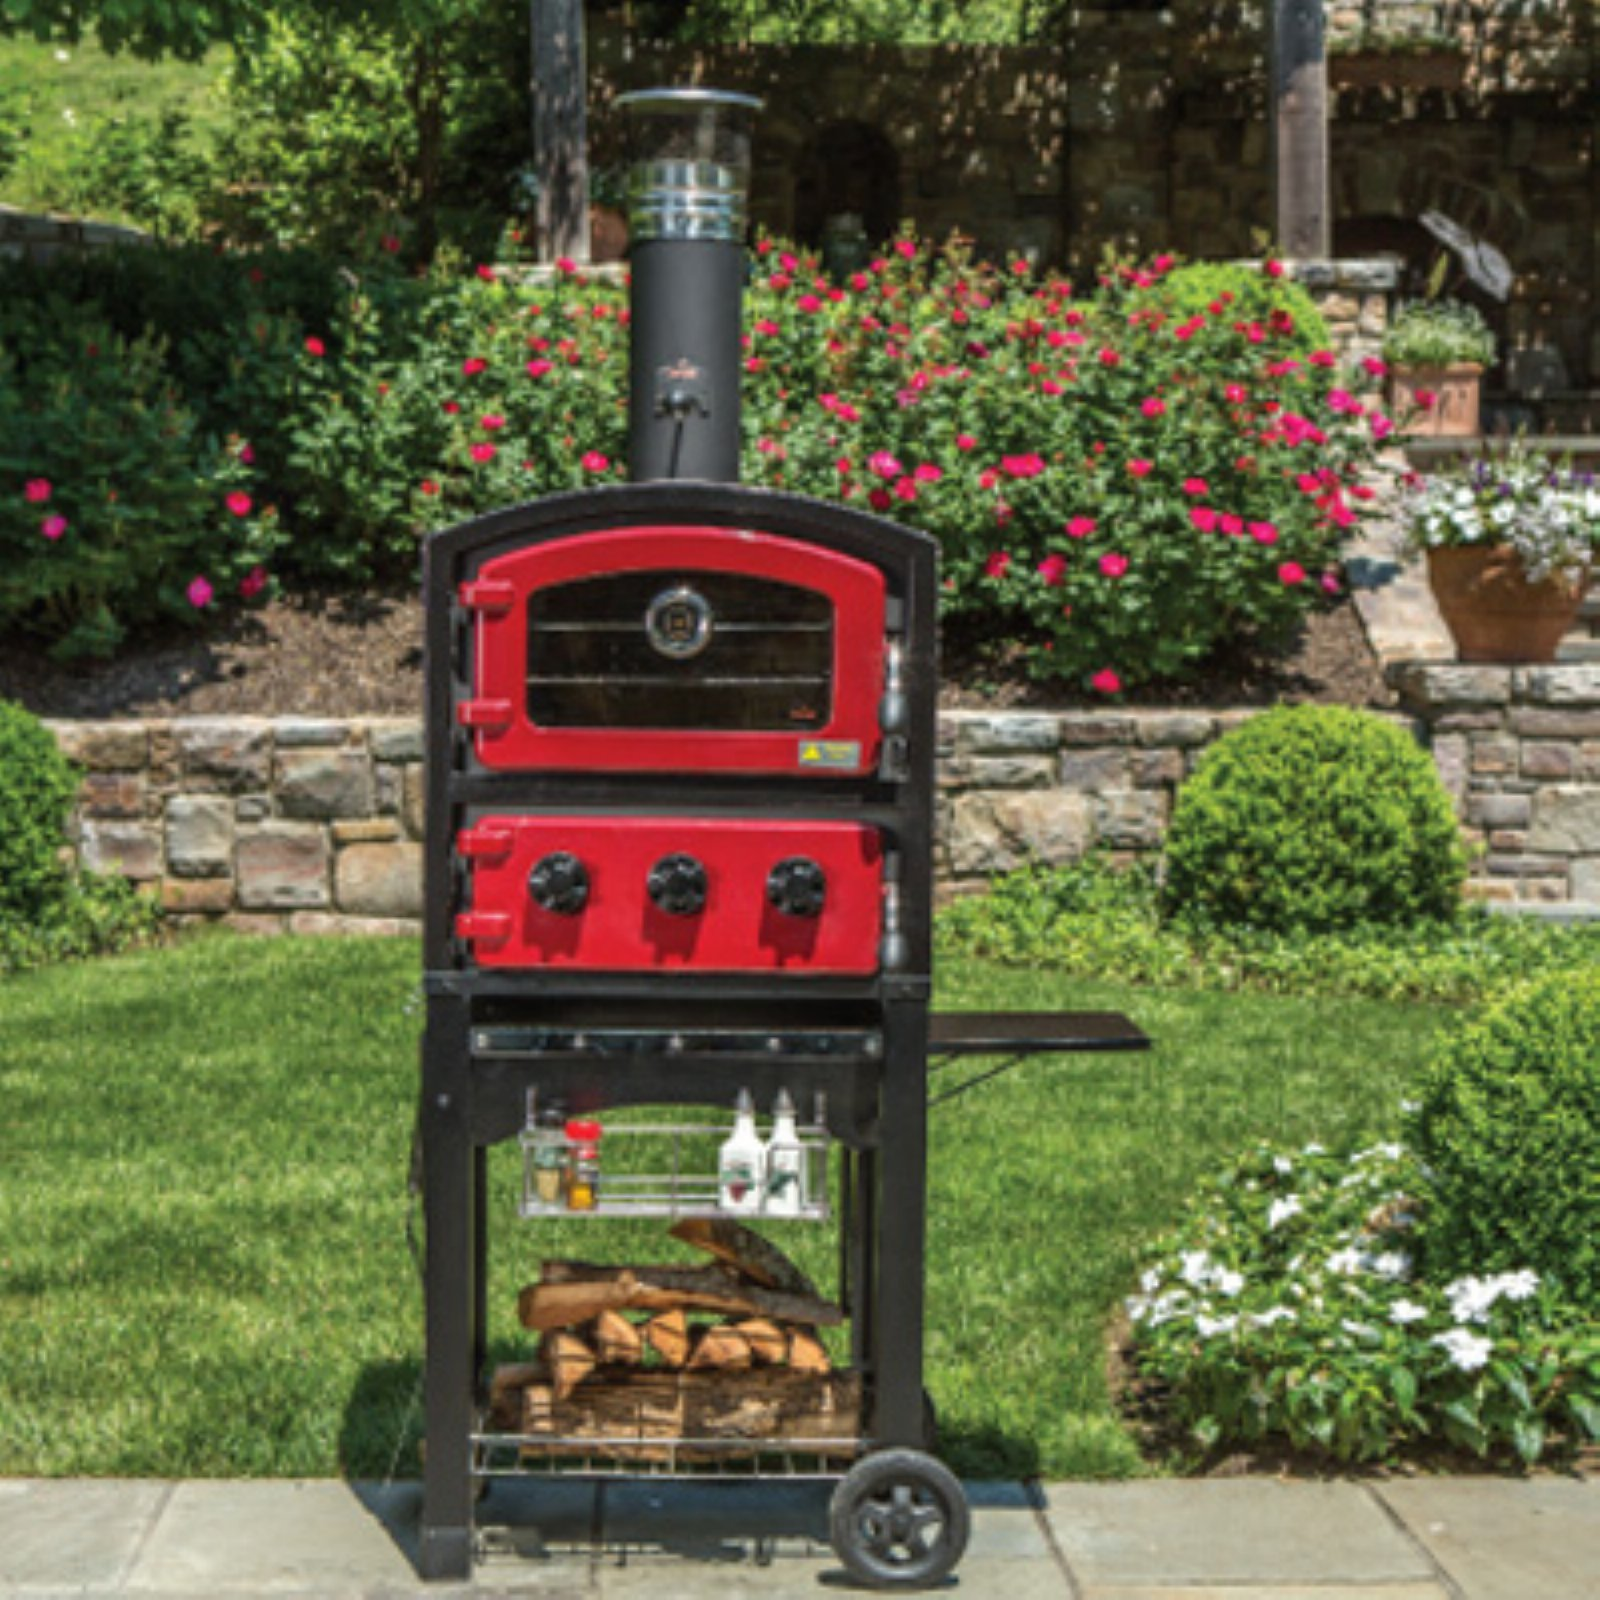 Fornetto Wood Fired Pizza Oven and Smoker Red by